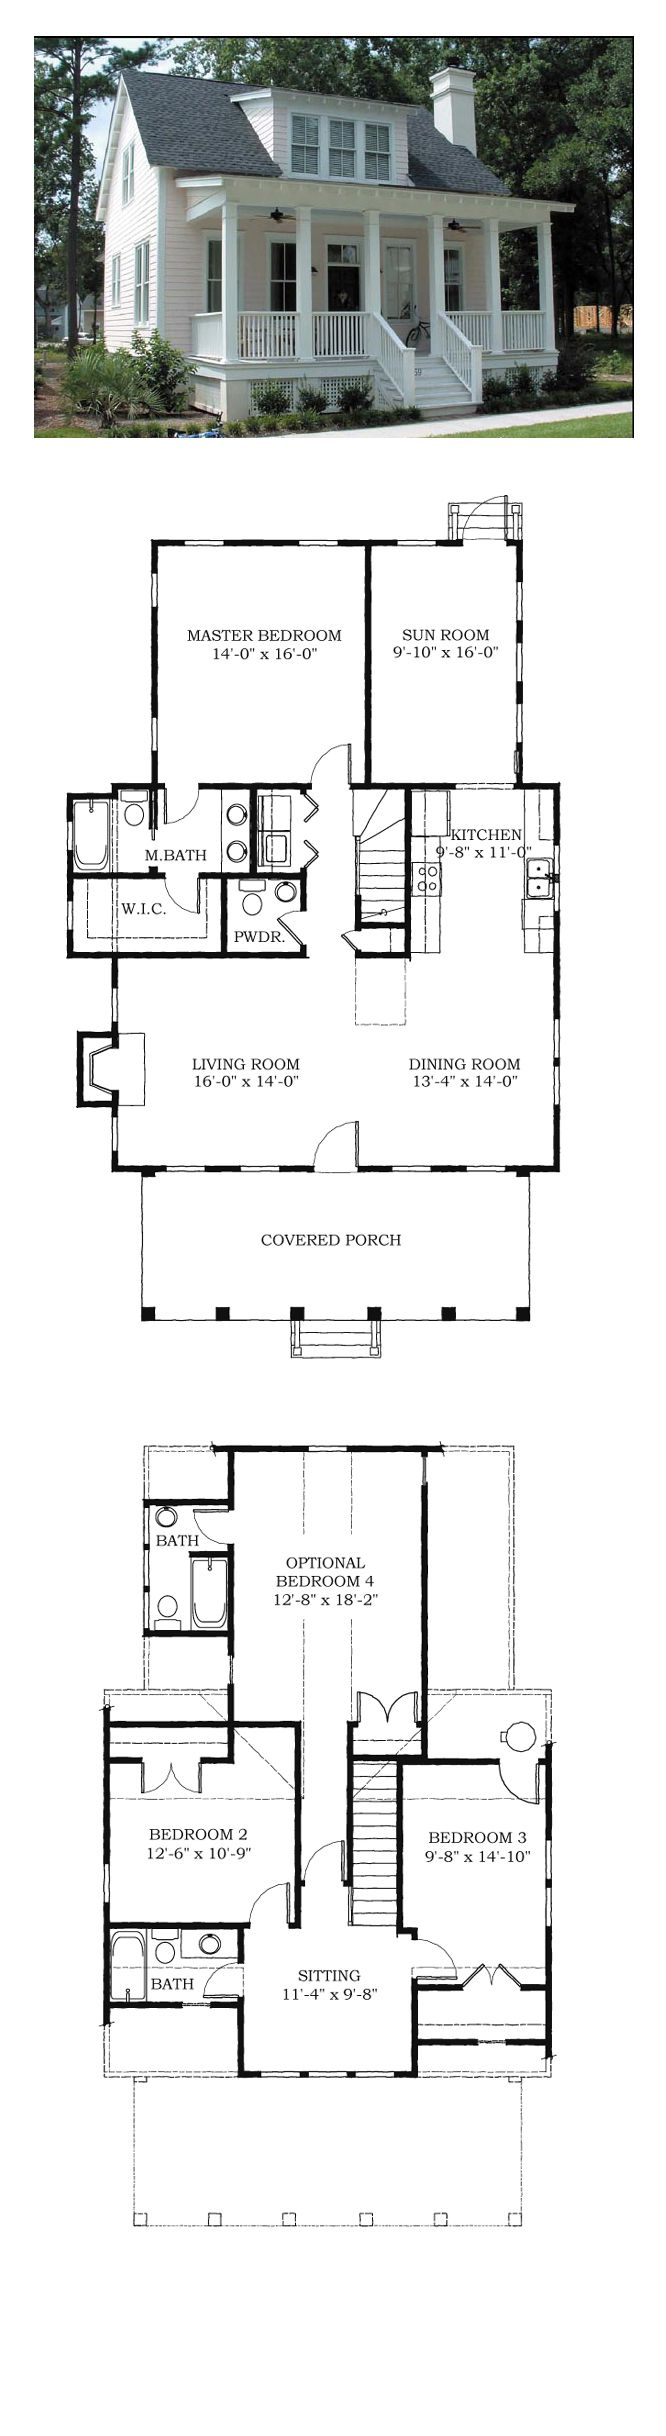 Small Houses Plans find this pin and more on guest house tiny home on wheels plans Cool House Plan Id Chp 38703 Total Living Area 1783 Sq Ft 4 Bedrooms And 35 Bathrooms Houseplan Carolinahome Pinterest House Small Houses